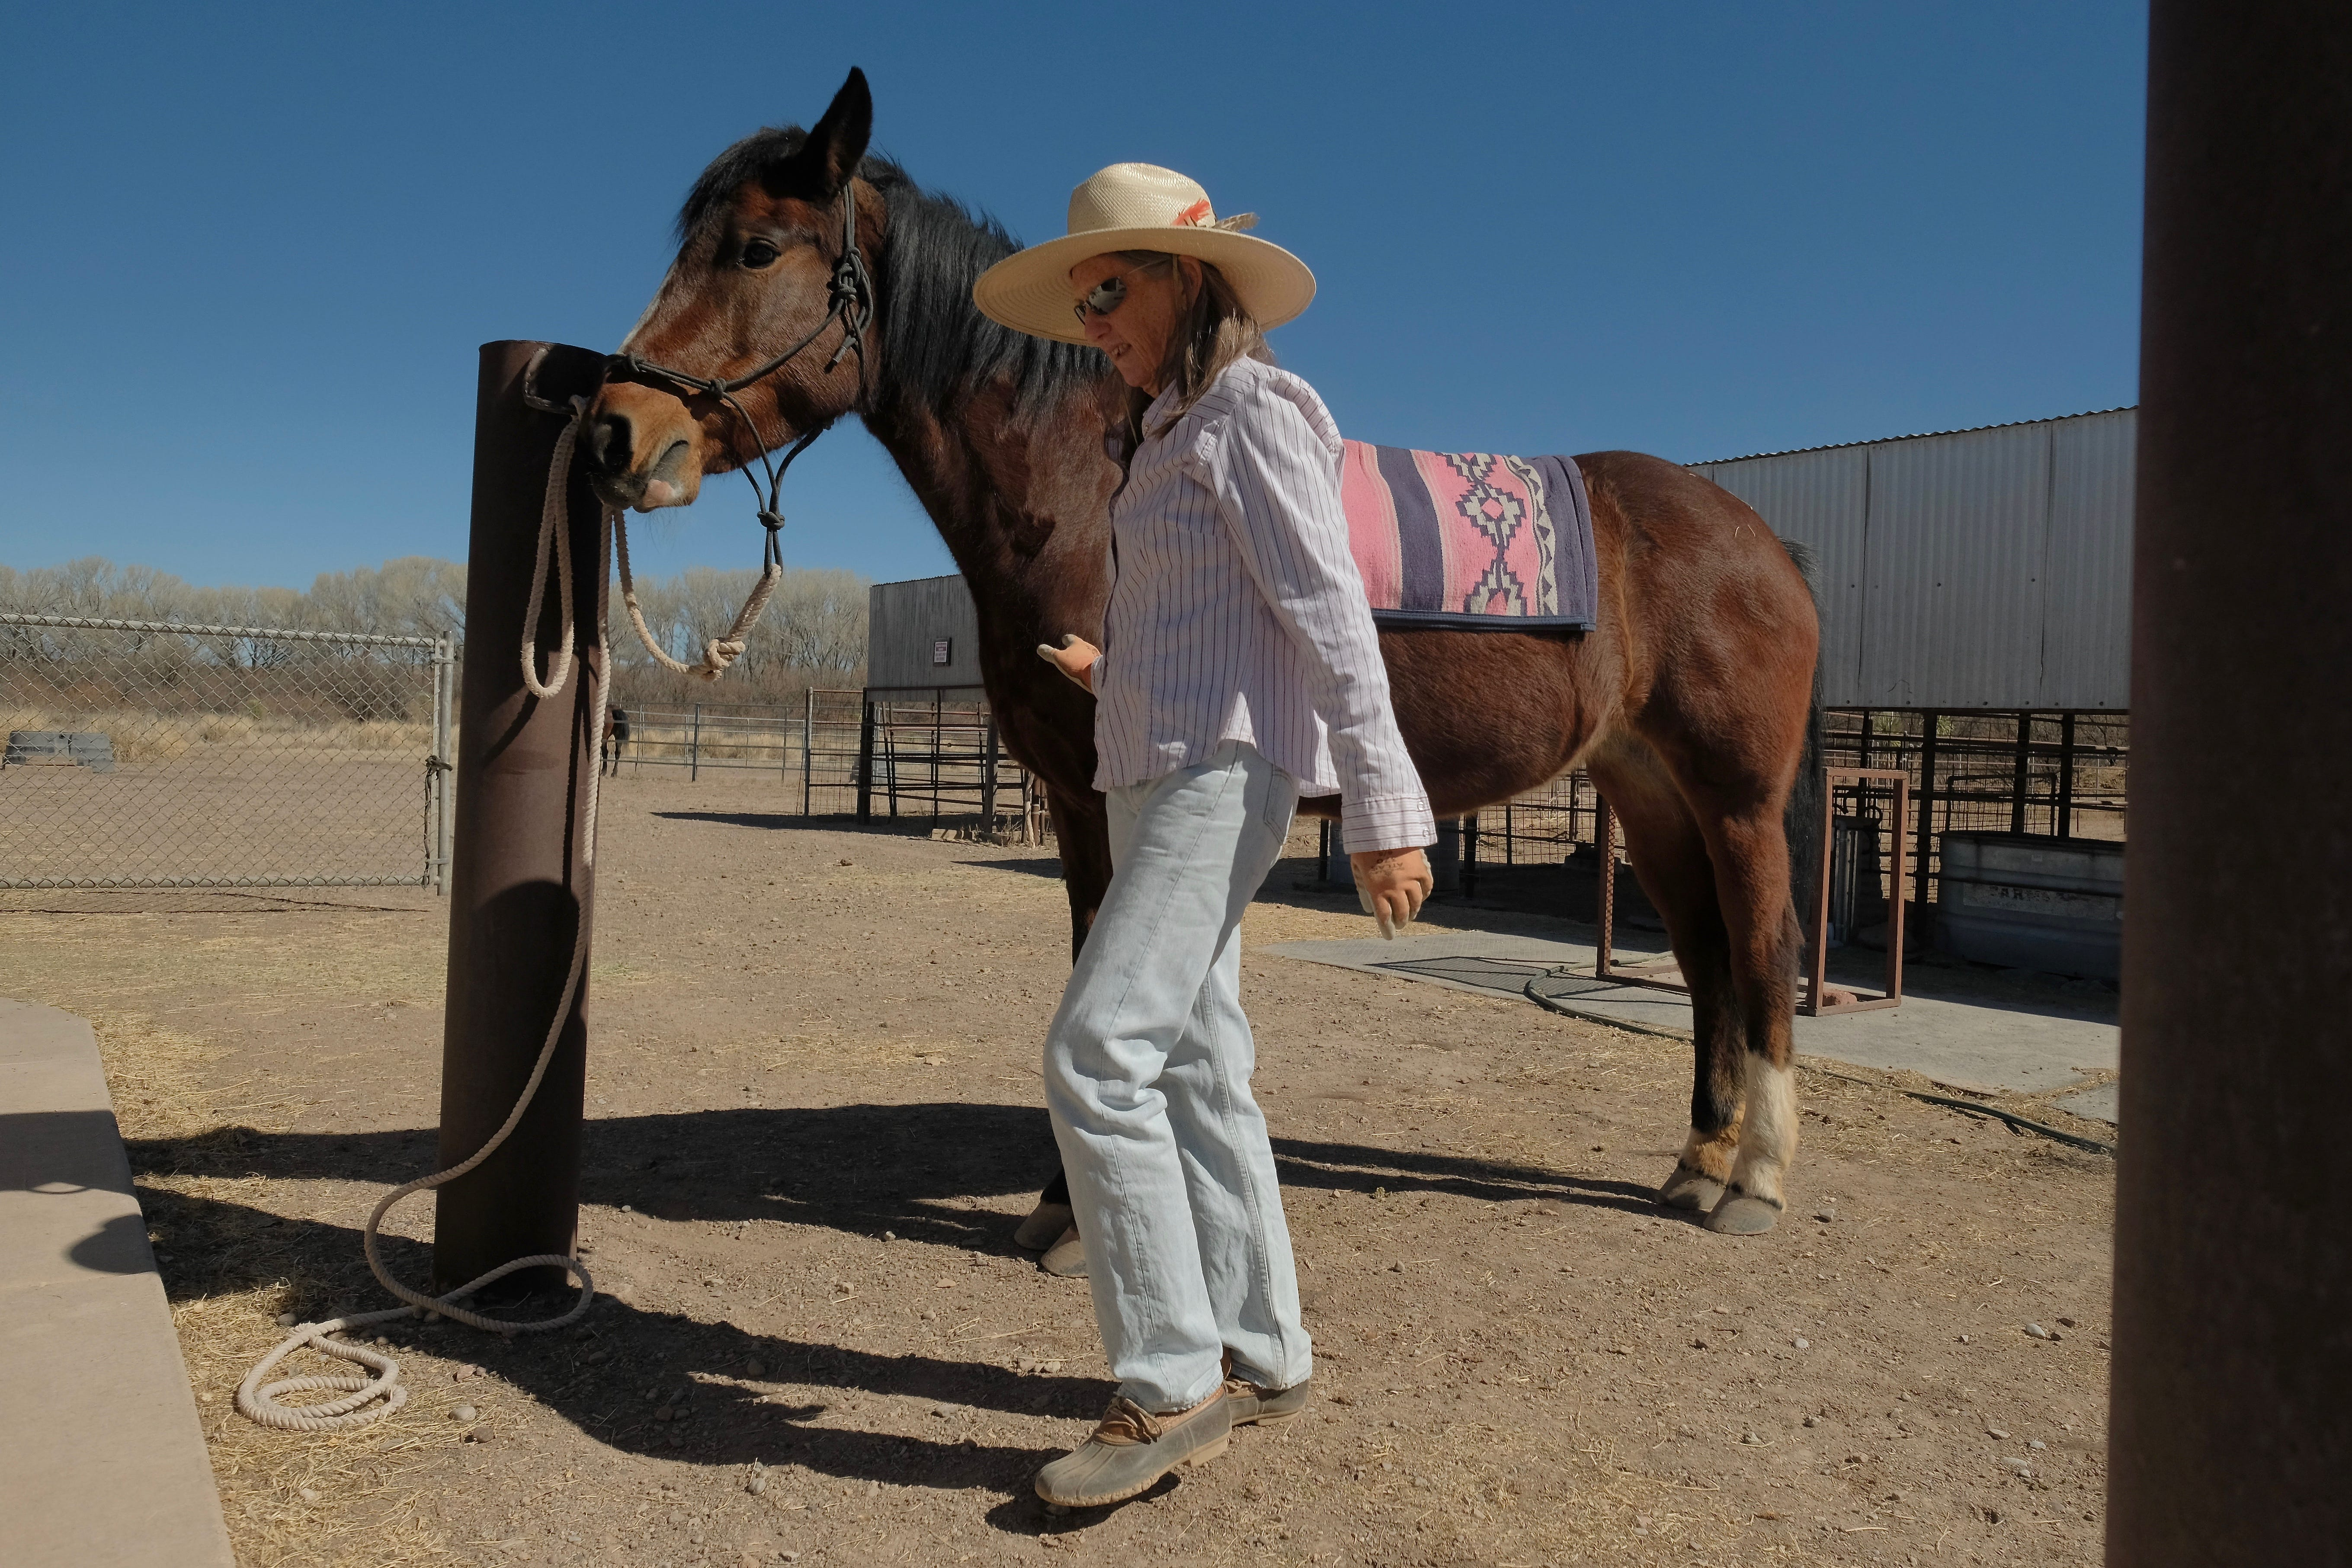 Sandy Anderson and one of two adopted wild horses that she trained herself at her property about 12 miles from the border on Feb. 5, 2021.